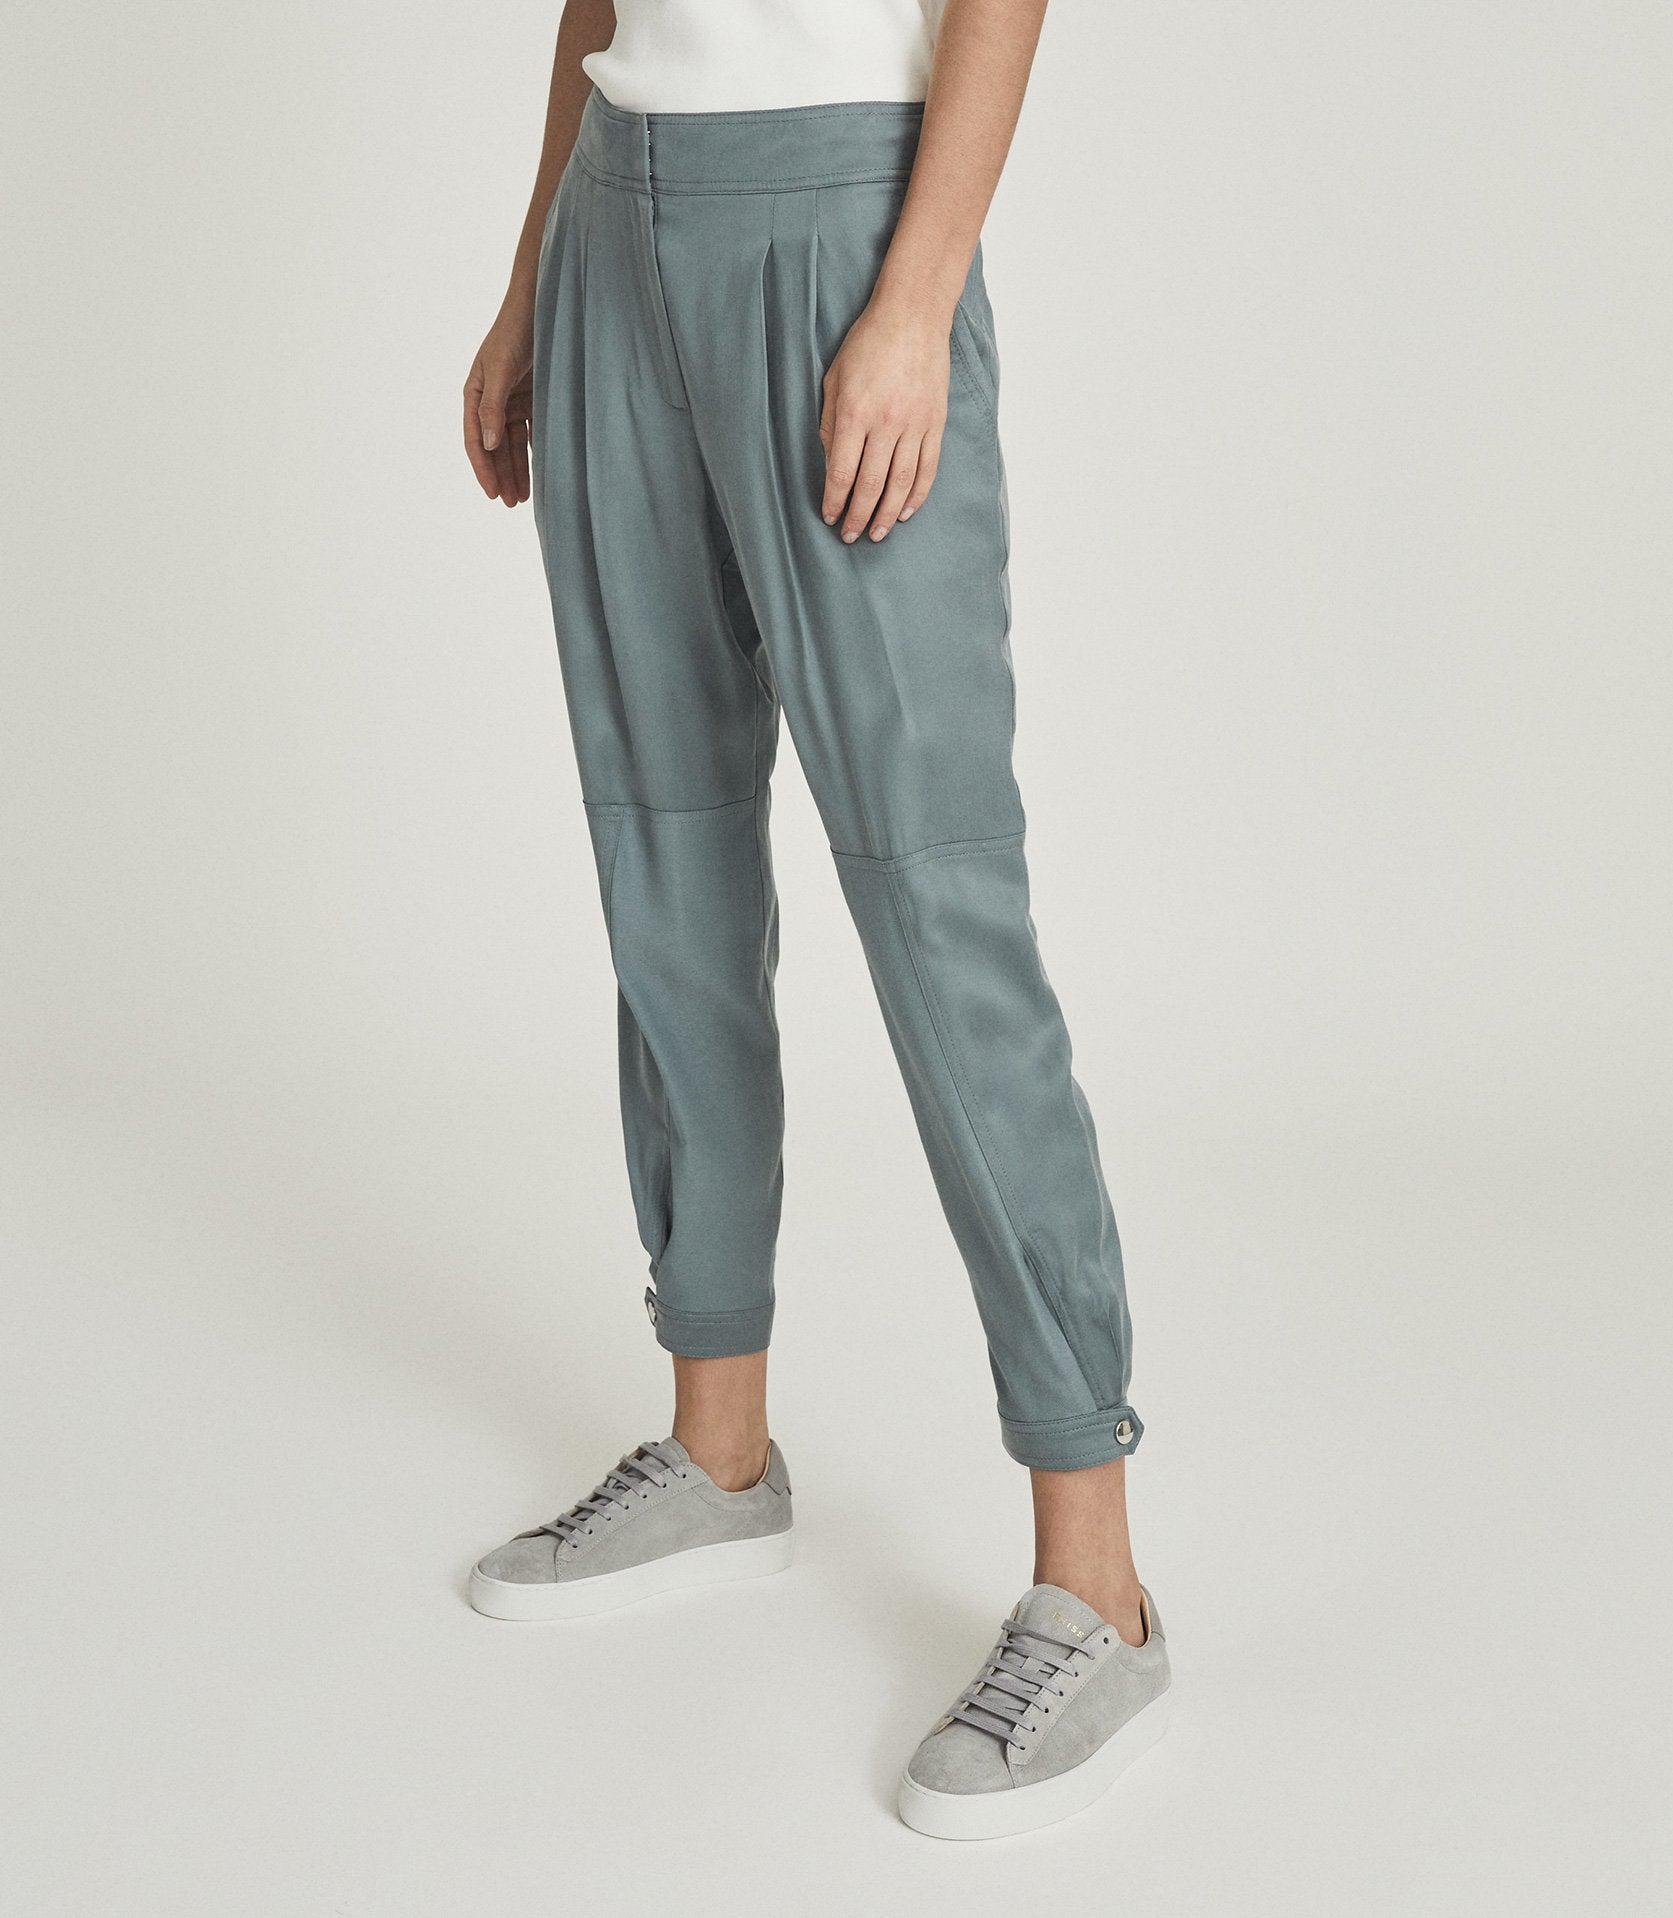 MARLOW - PLEAT FRONT TAPERED PANTS 1